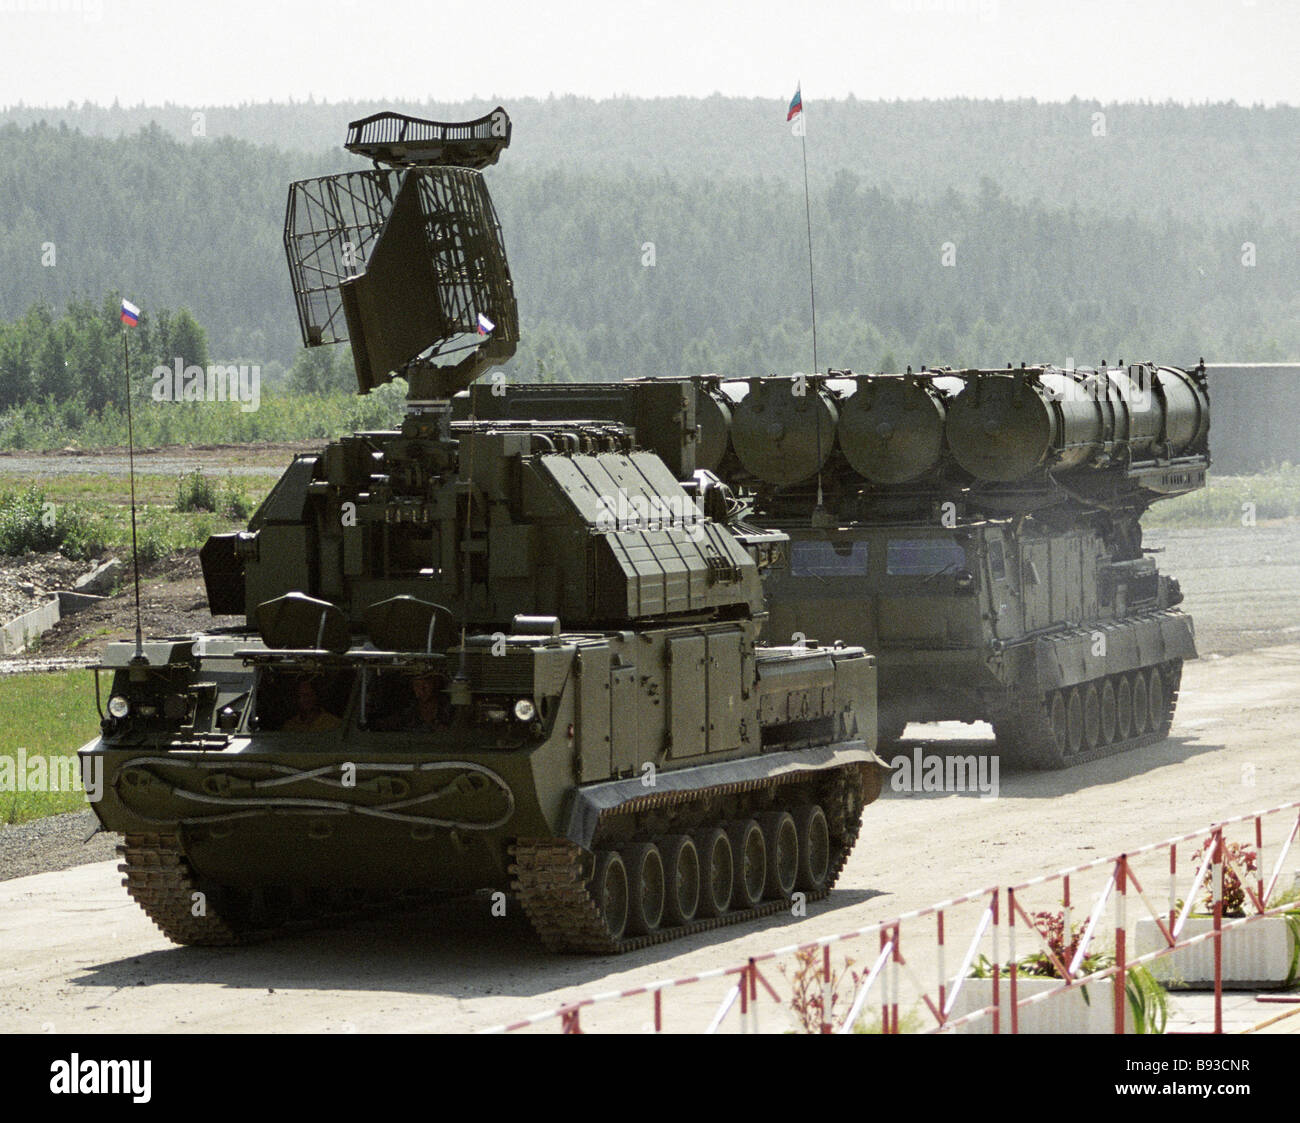 S 300 missile systems vs patriot - Radar Unit Of The S 300 Surface To Air Missile System At The Second Ural Arms